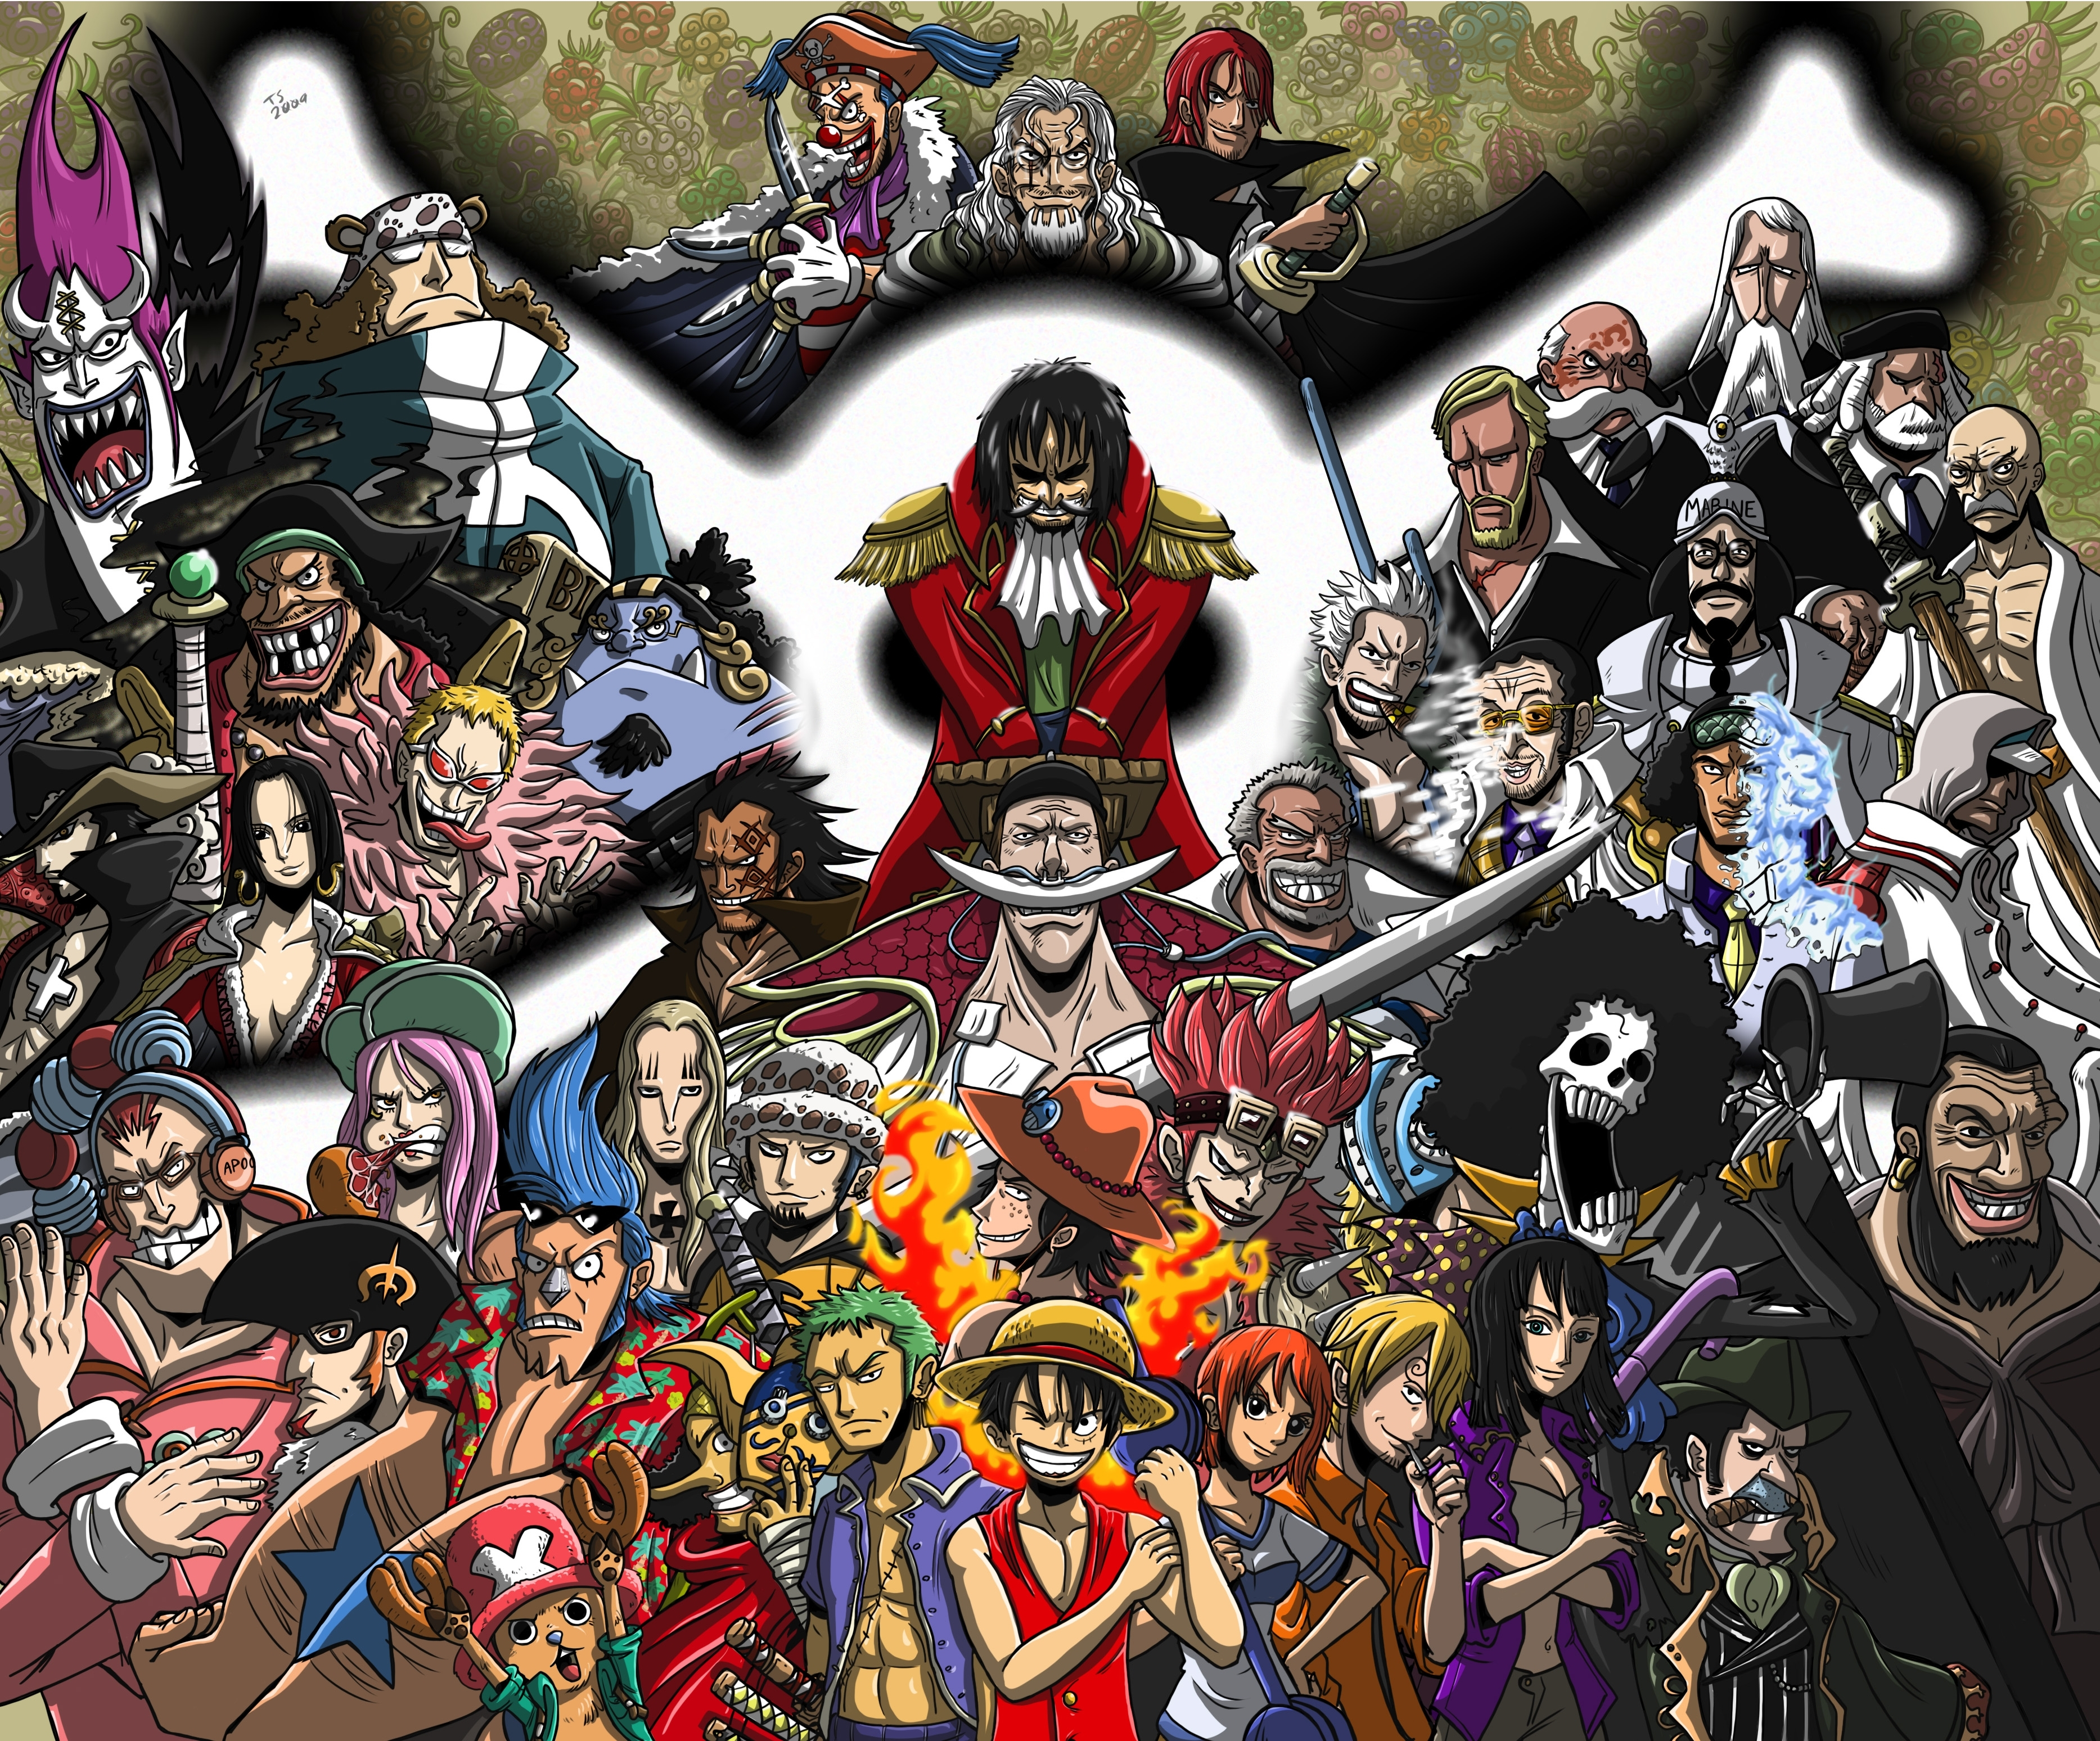 Ultra hd anime wallpapers album on imgur 10 New One Piece Wallpaper Hd 1080P FULL HD 1920×1080 For ...